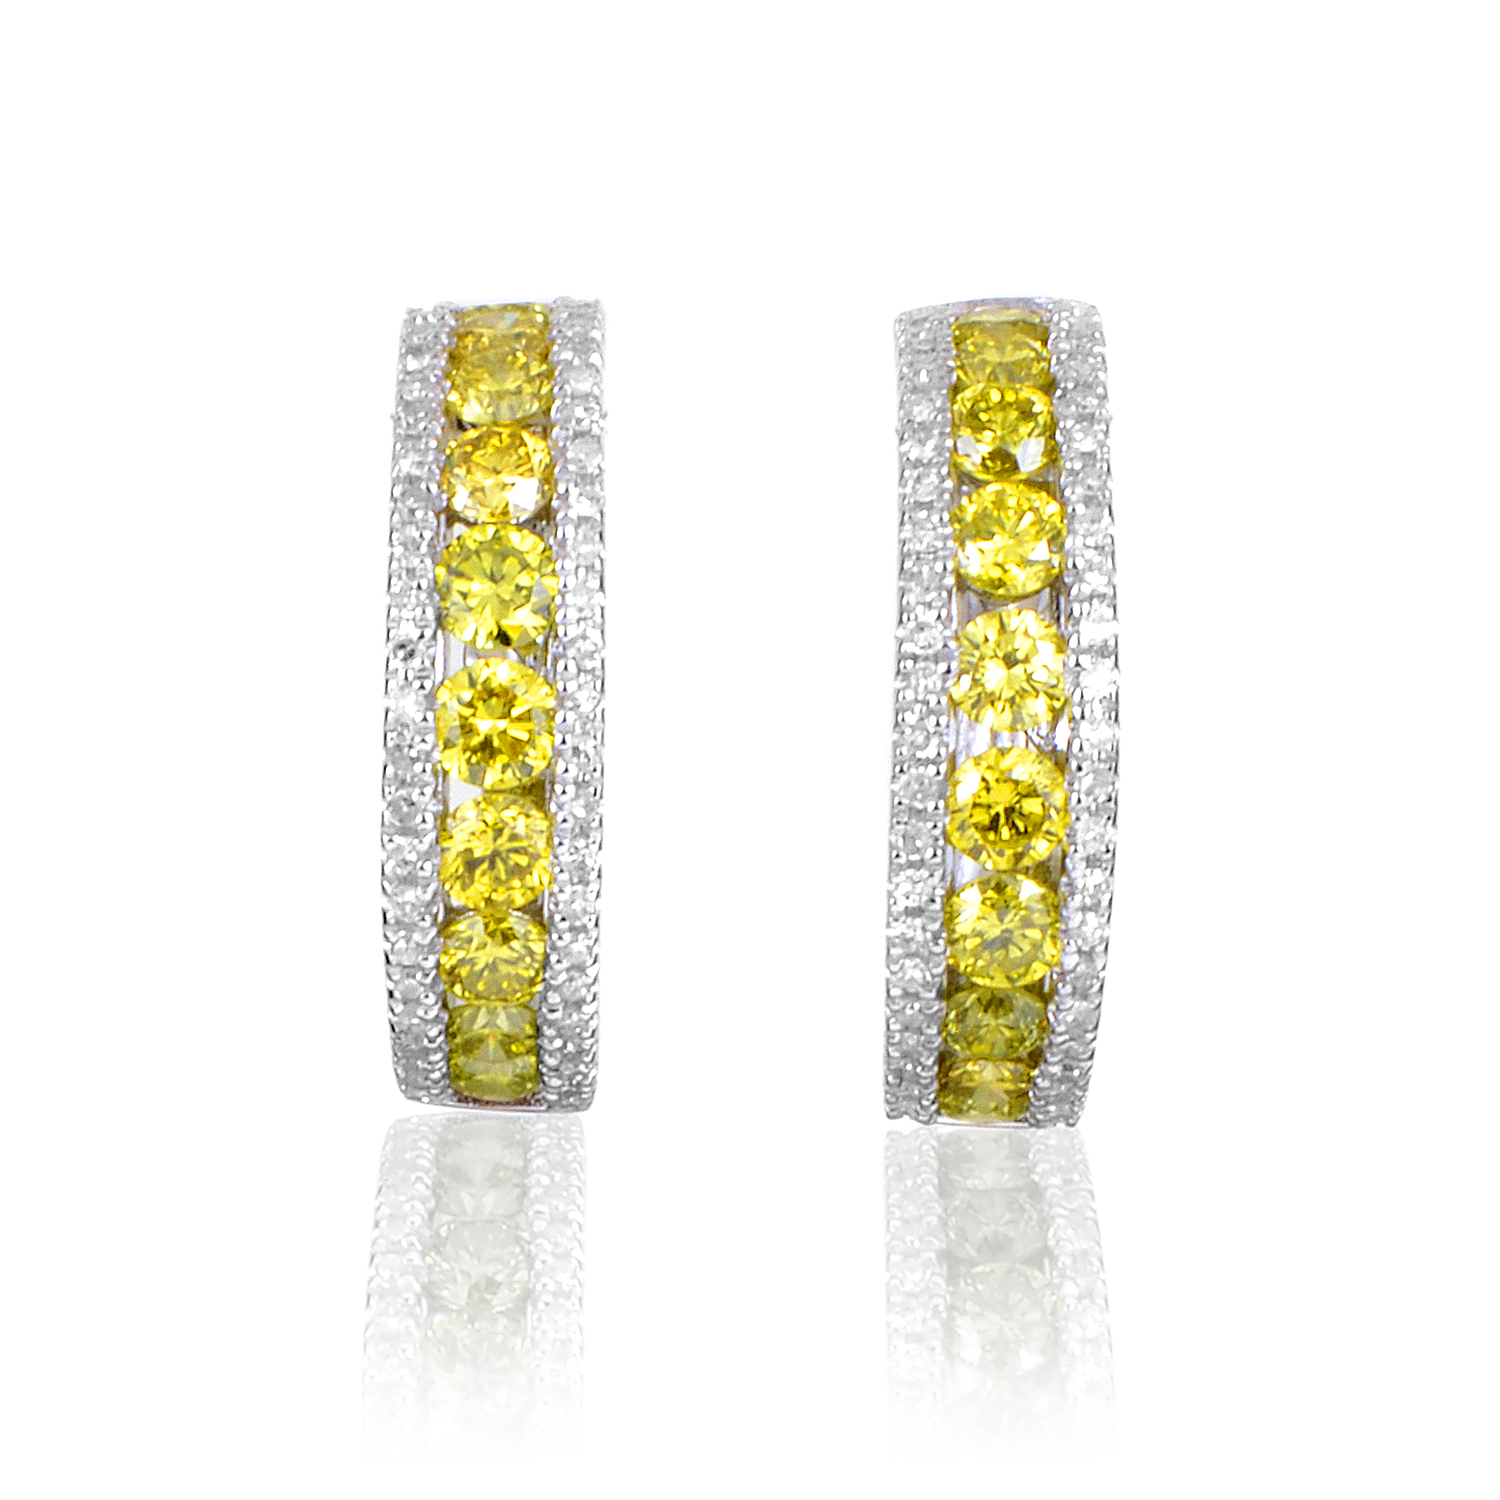 Women's 14K White Gold Yellow & White Diamond Hoop Earrings AER-12568W